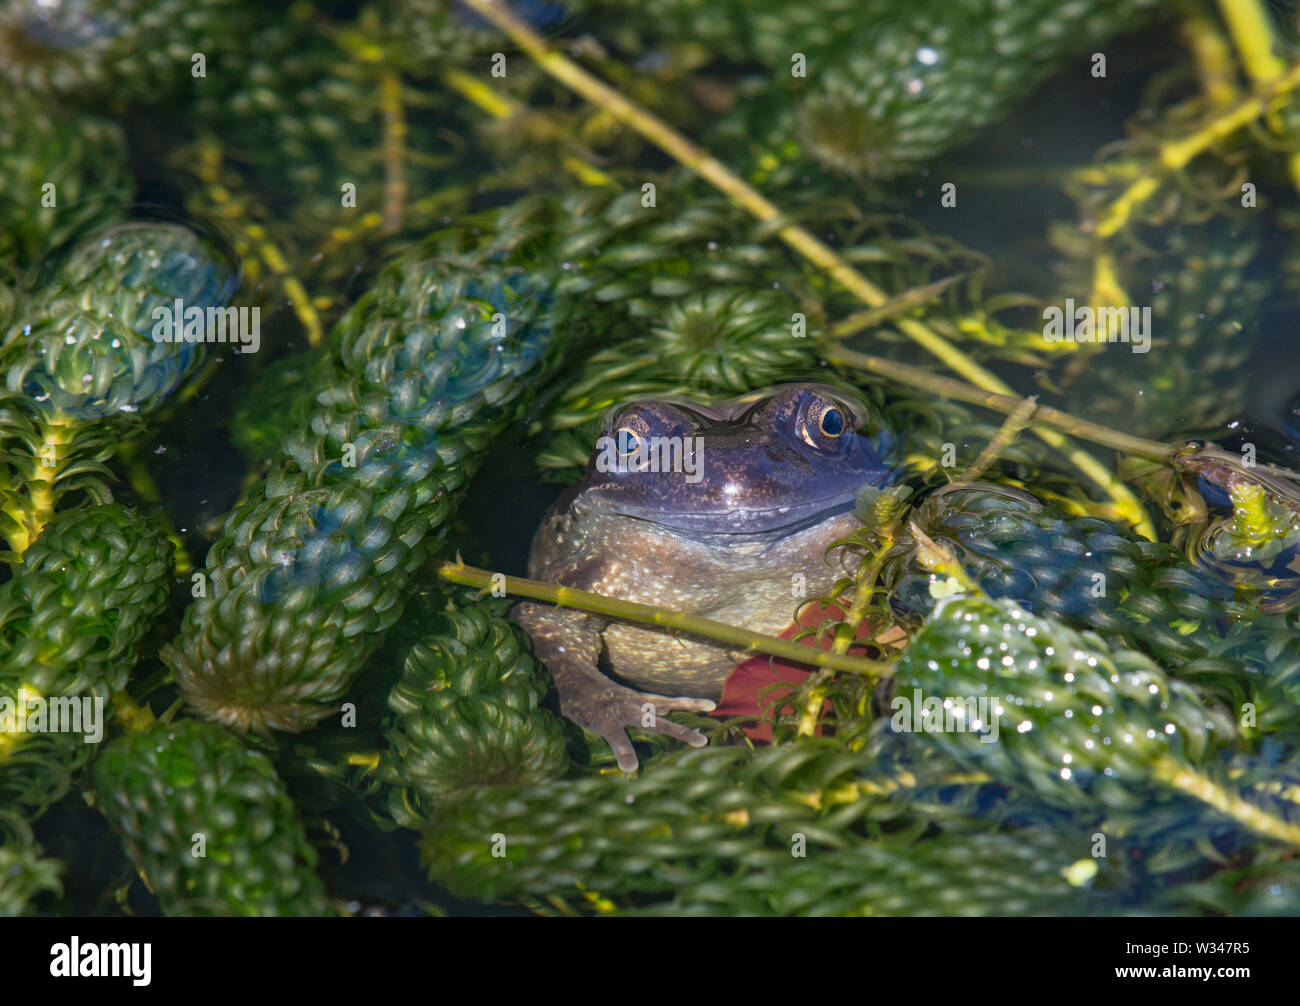 COMMON FROG, Rana temporaria, in garden pond, Lancashire, UK - Stock Image